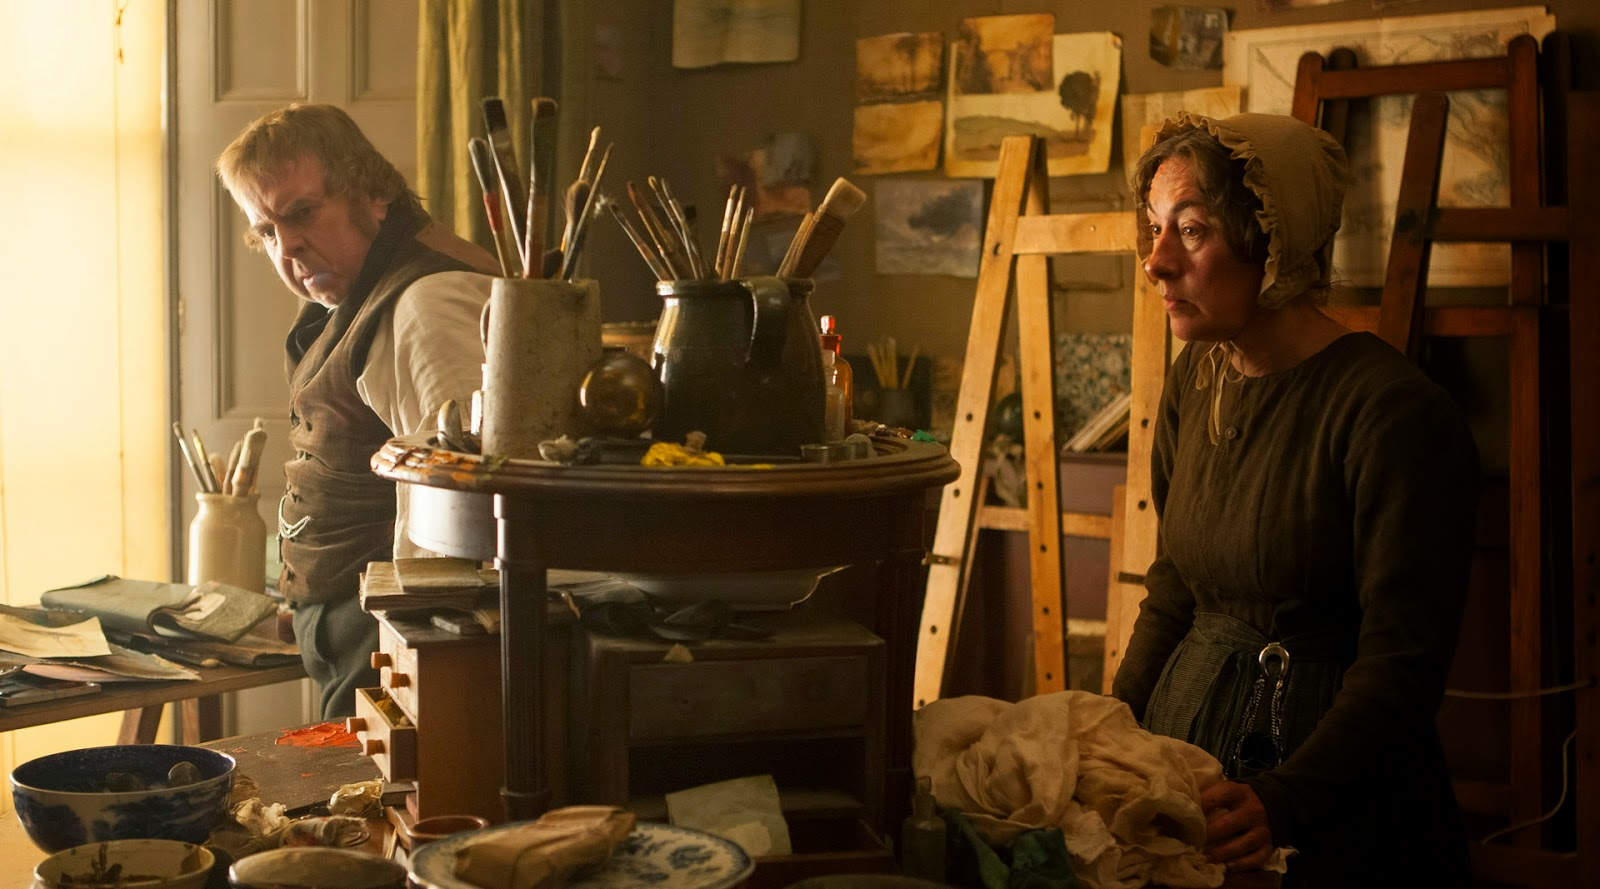 Fotograma: Mr. Turner (2014)